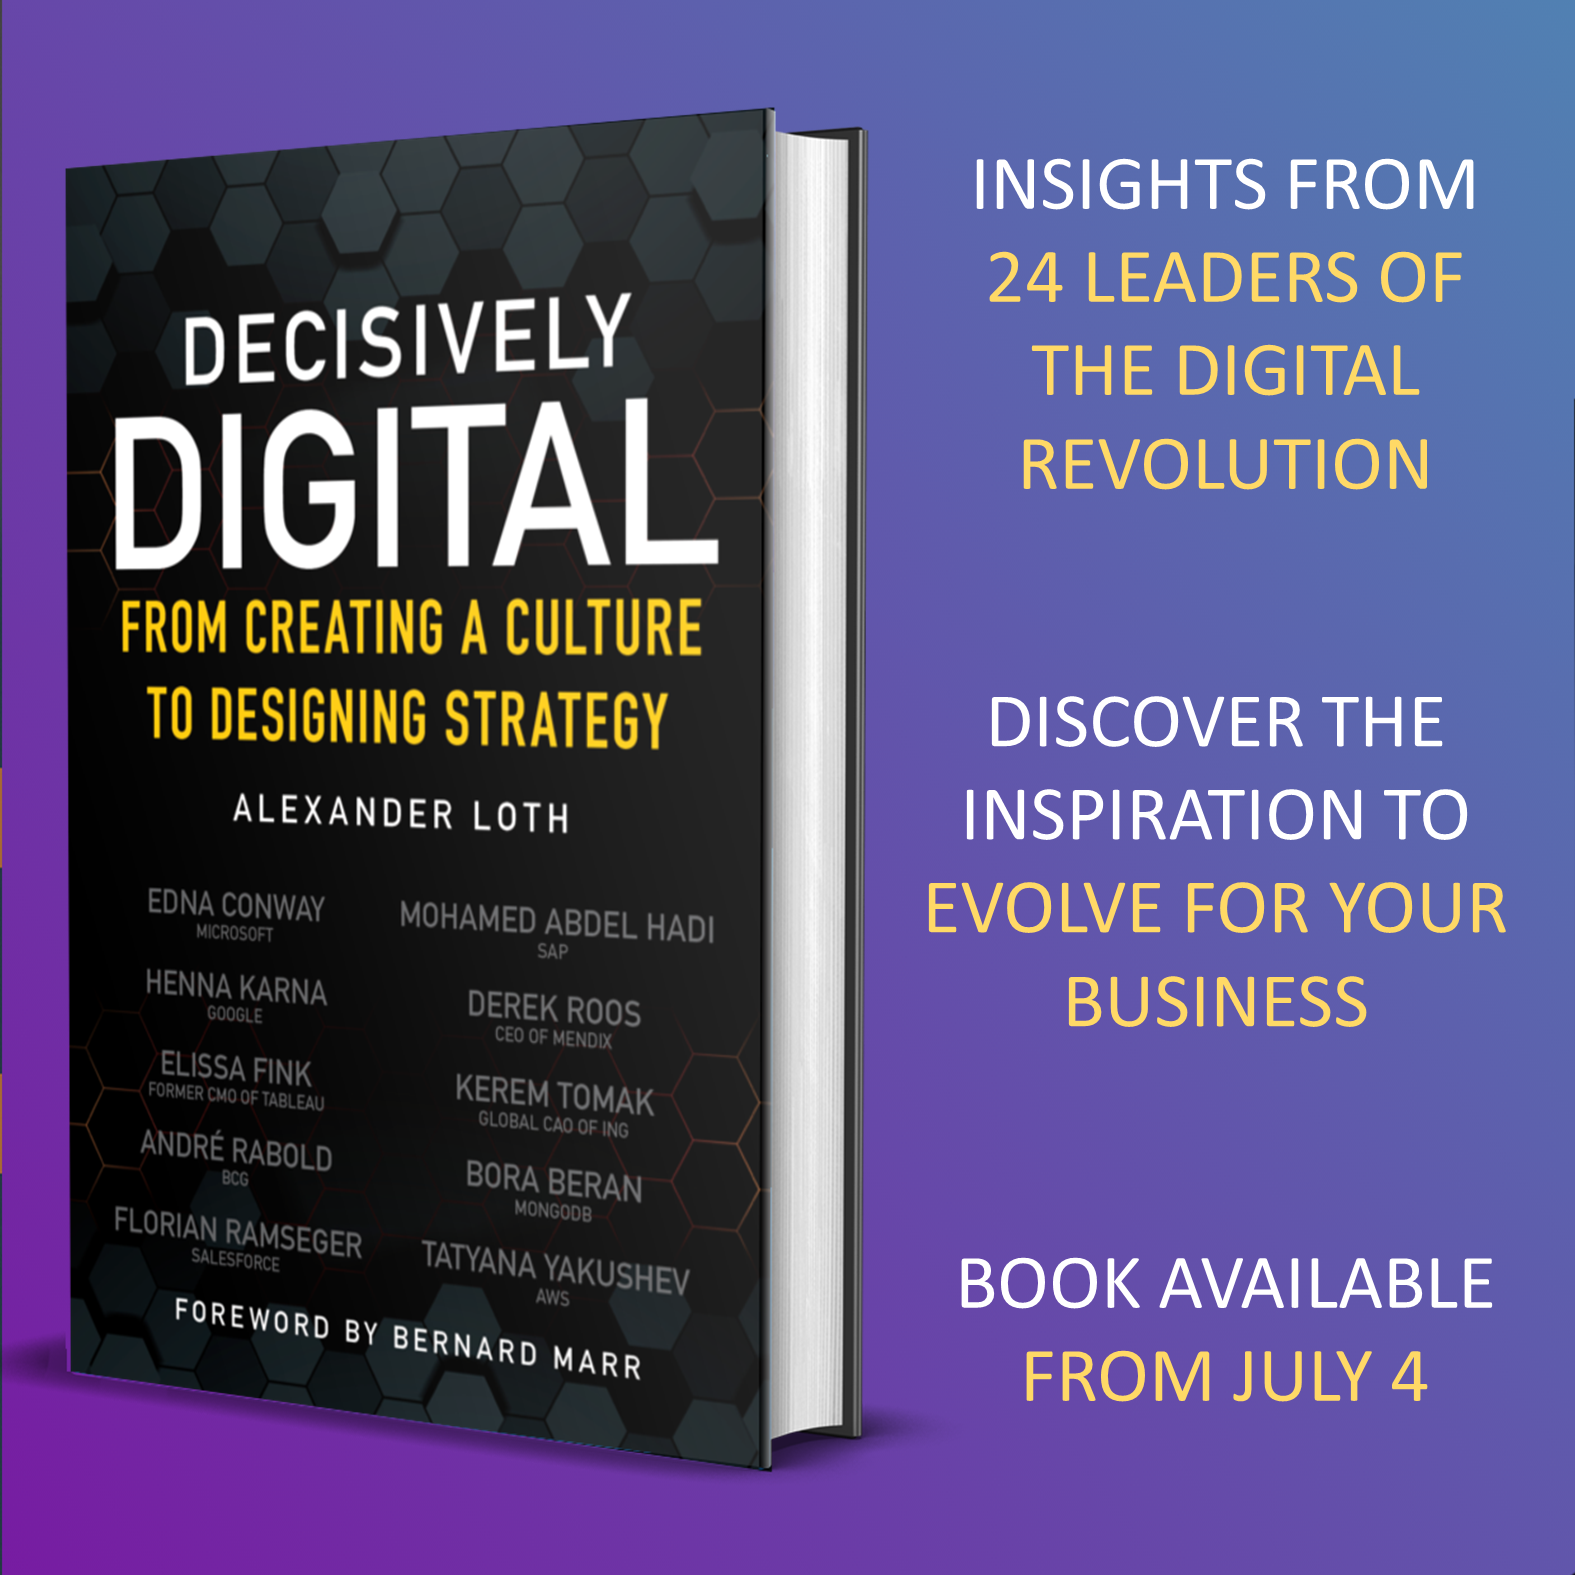 Decisively Digital book cover